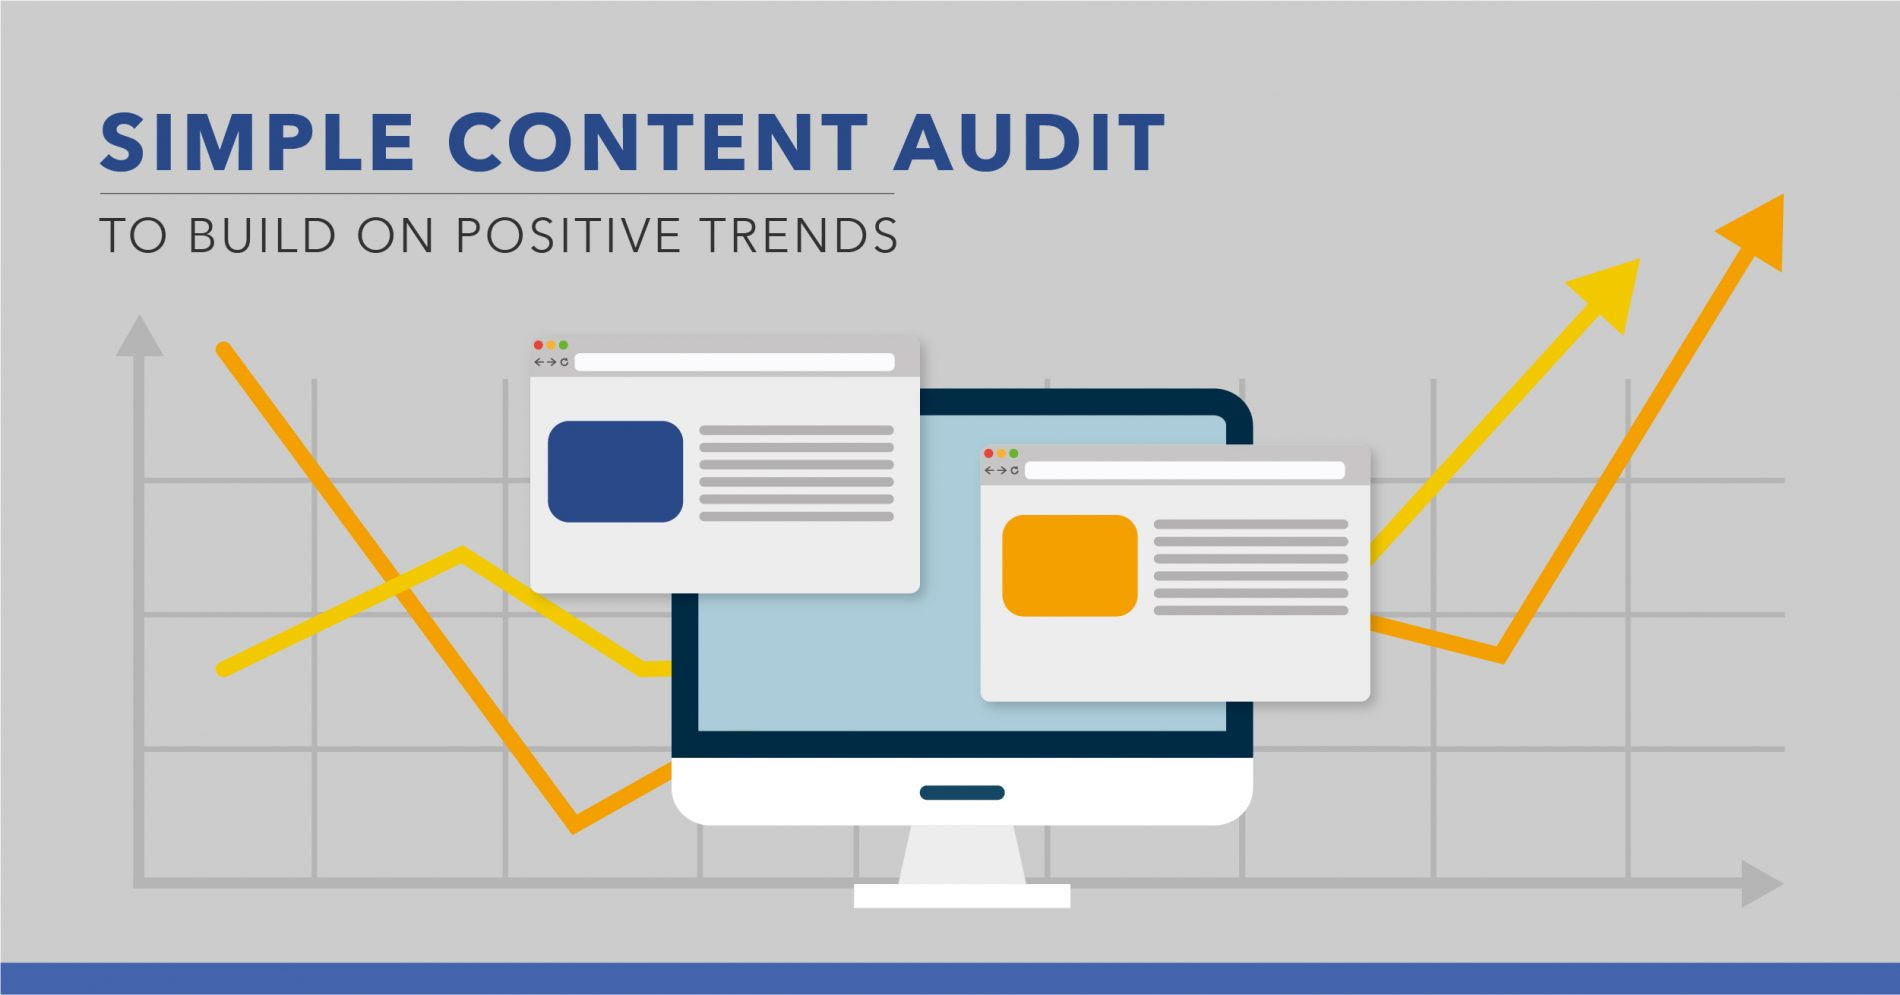 A Content Audit to Build on Positive Trends